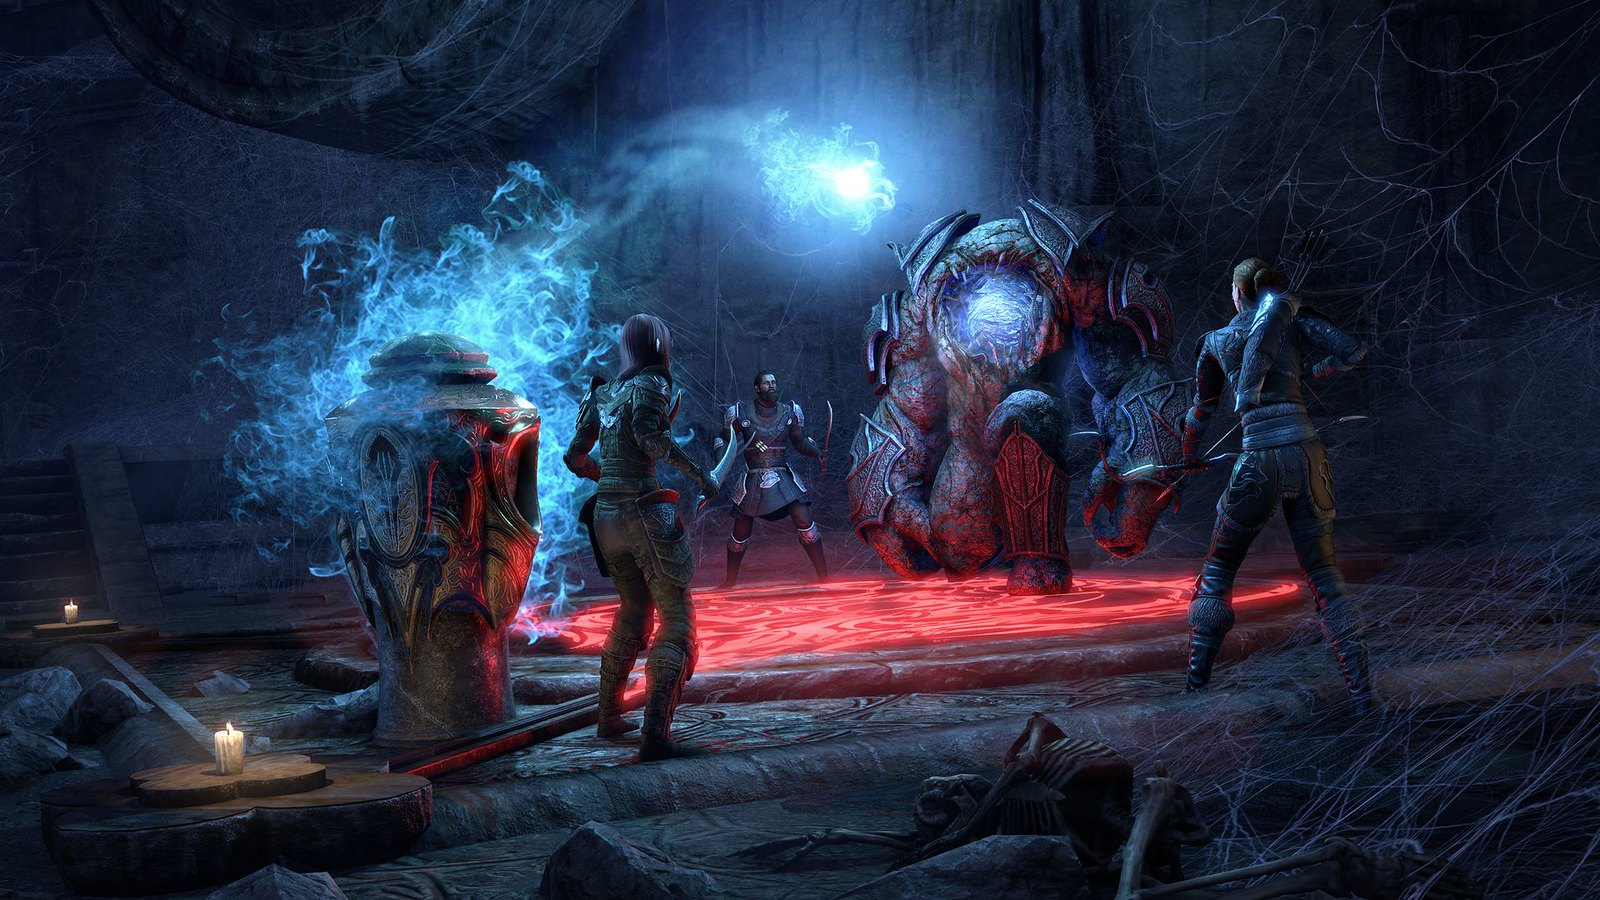 Elder Scrolls Online wraps up its Skyrim story with new Markarth DLC thumbnail